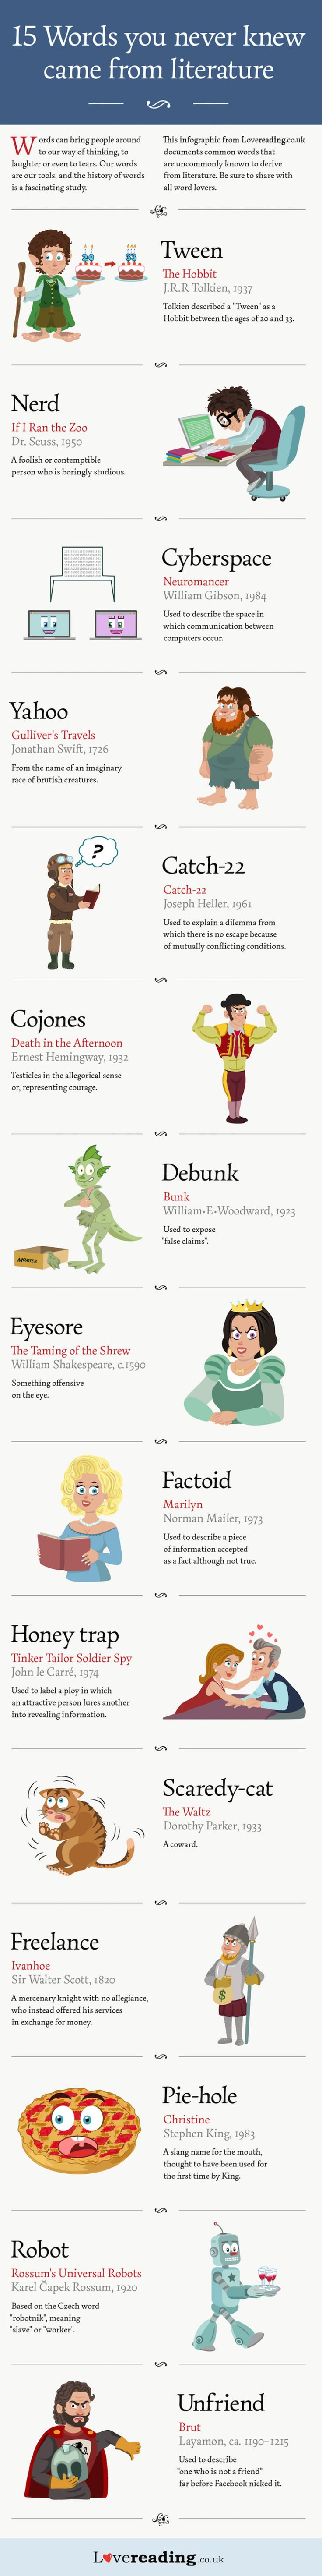 Infographic | Common words that are uncommonly known to originate from literature.